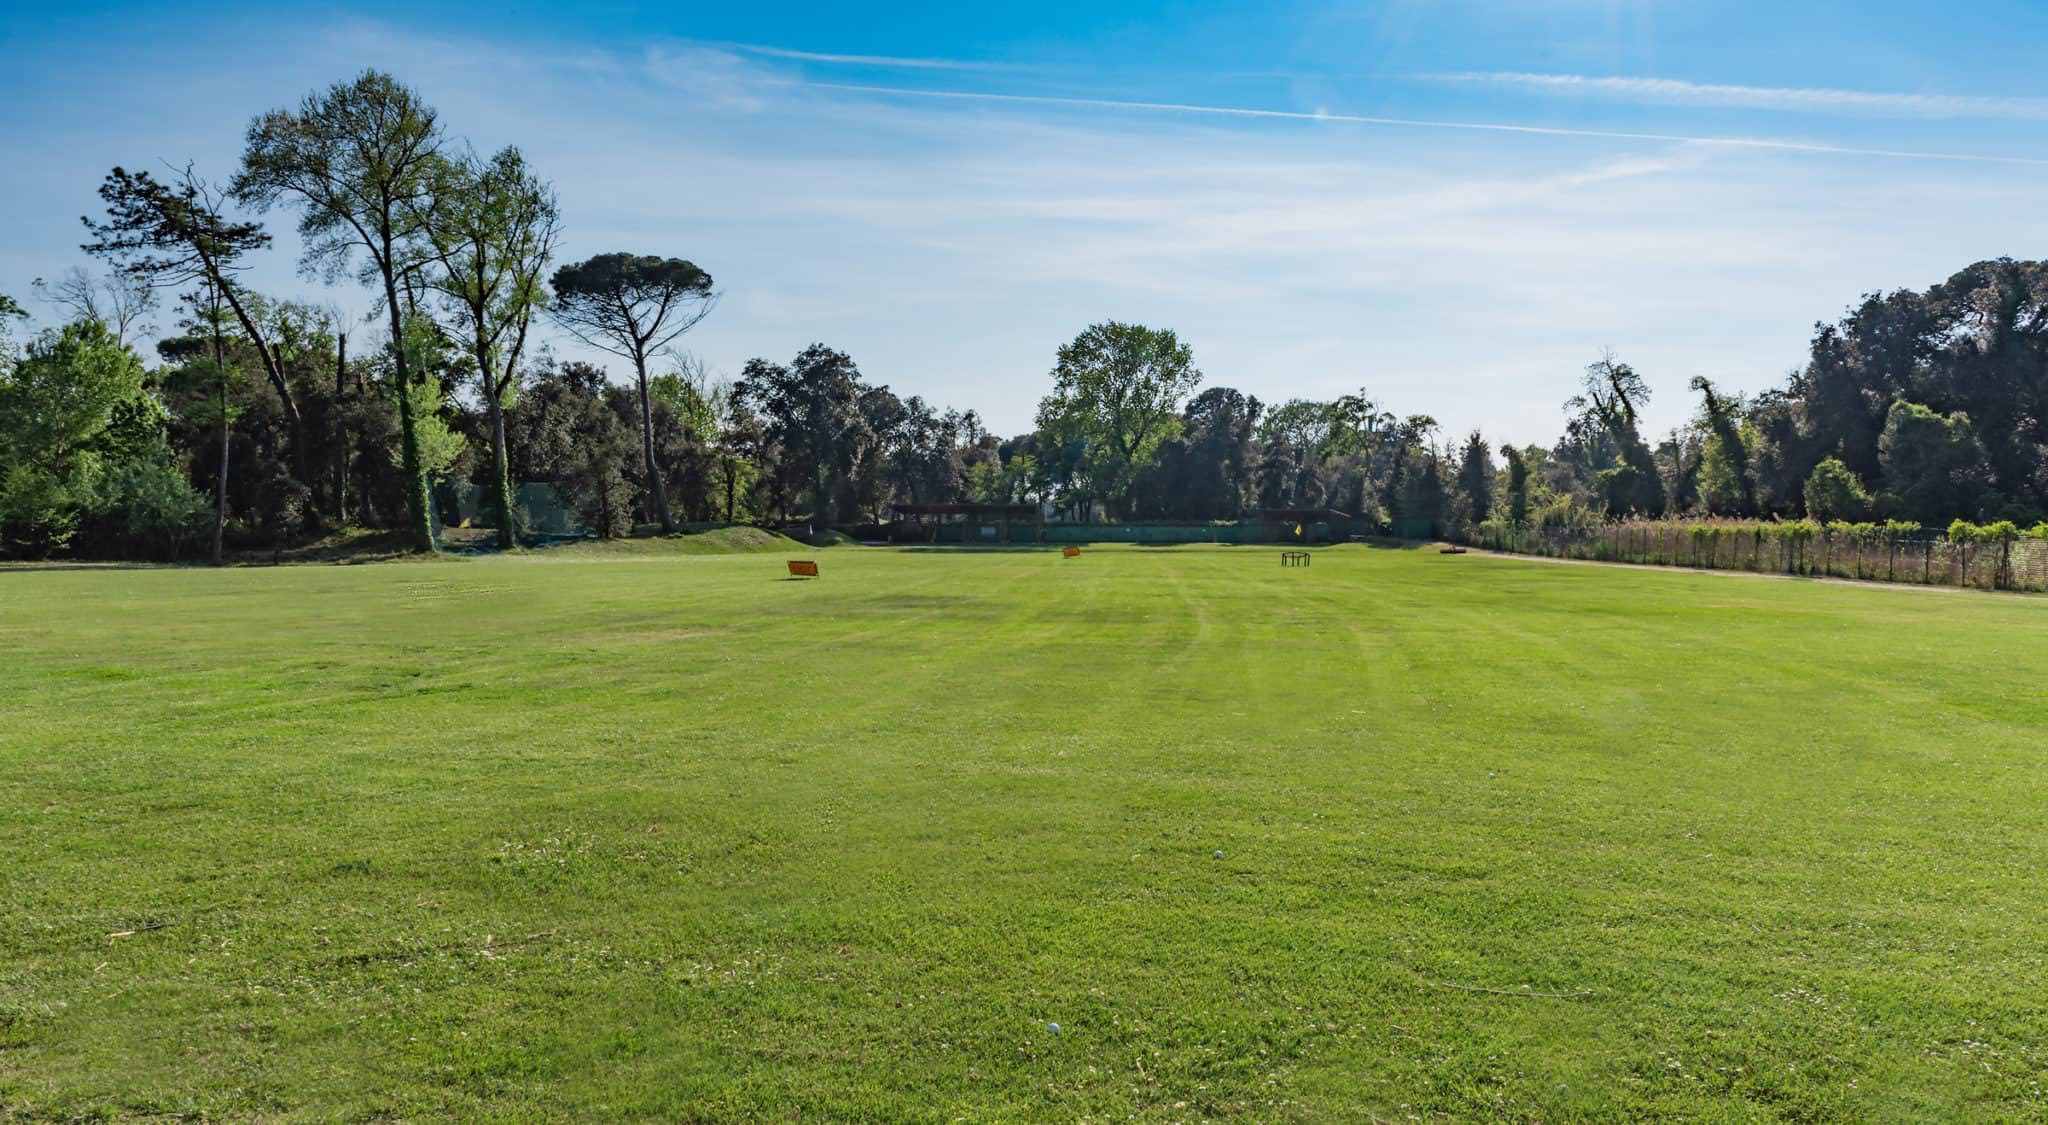 golf-tirrenia-2928-campopratica